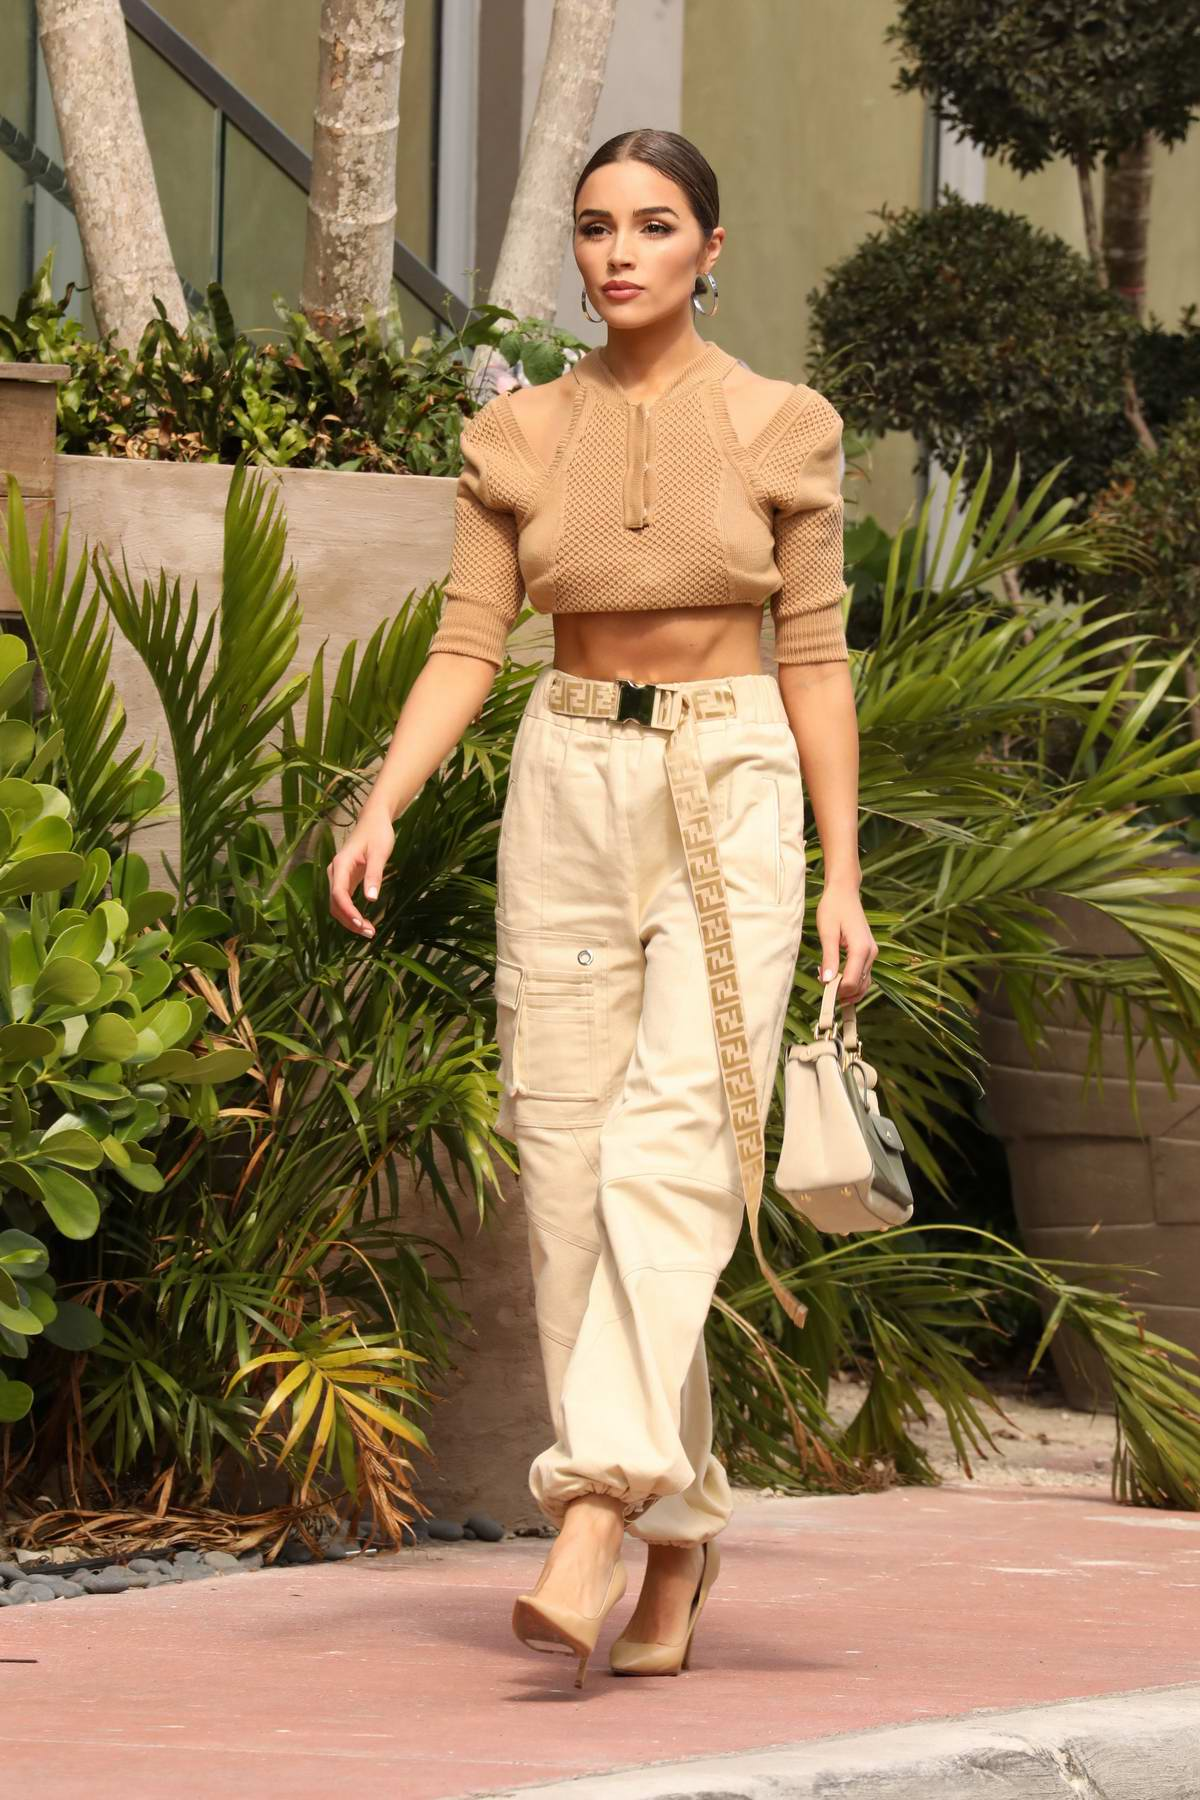 Olivia Culpo looks super stylish in a brown crop top, beige cargo pants with a Fendi belt and heels while out in Miami, Florida